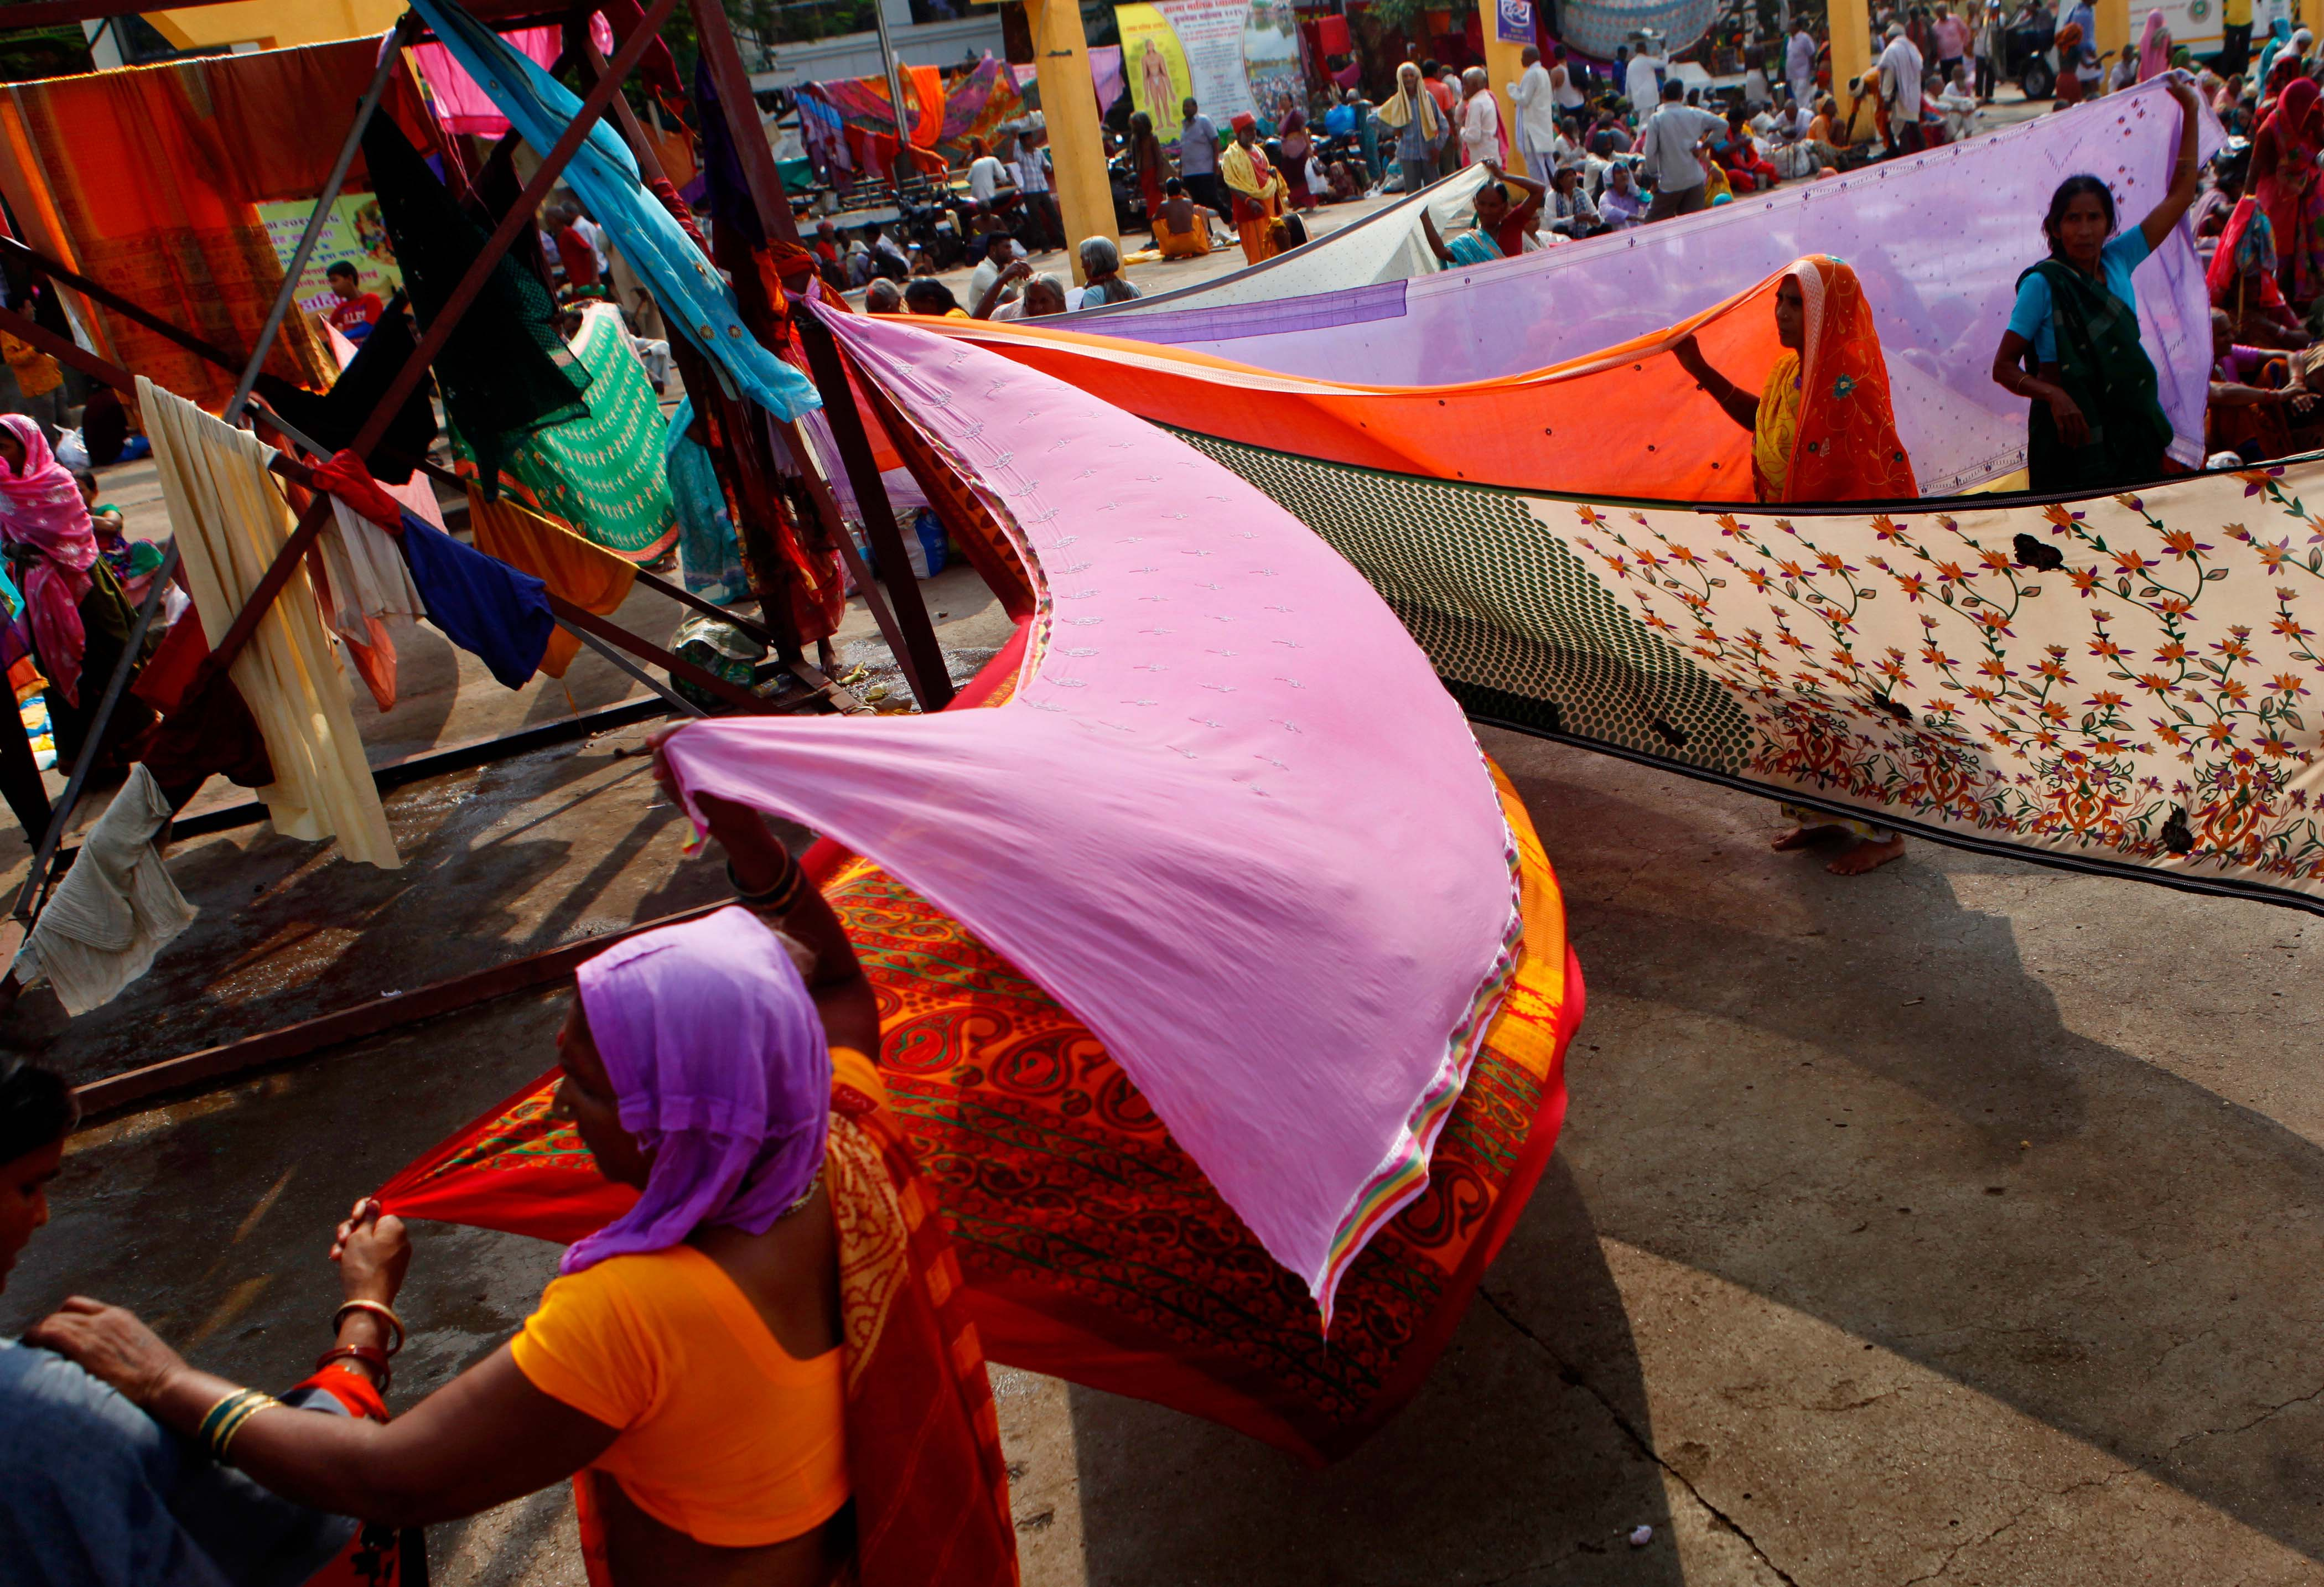 Devotees drying their clothes after the holy dip in the river Godavari on the eve of second Shahi Snan of Simhastha Kumbh Mela at Ramghat in Nashik, India, on Sept. 12, 2015.